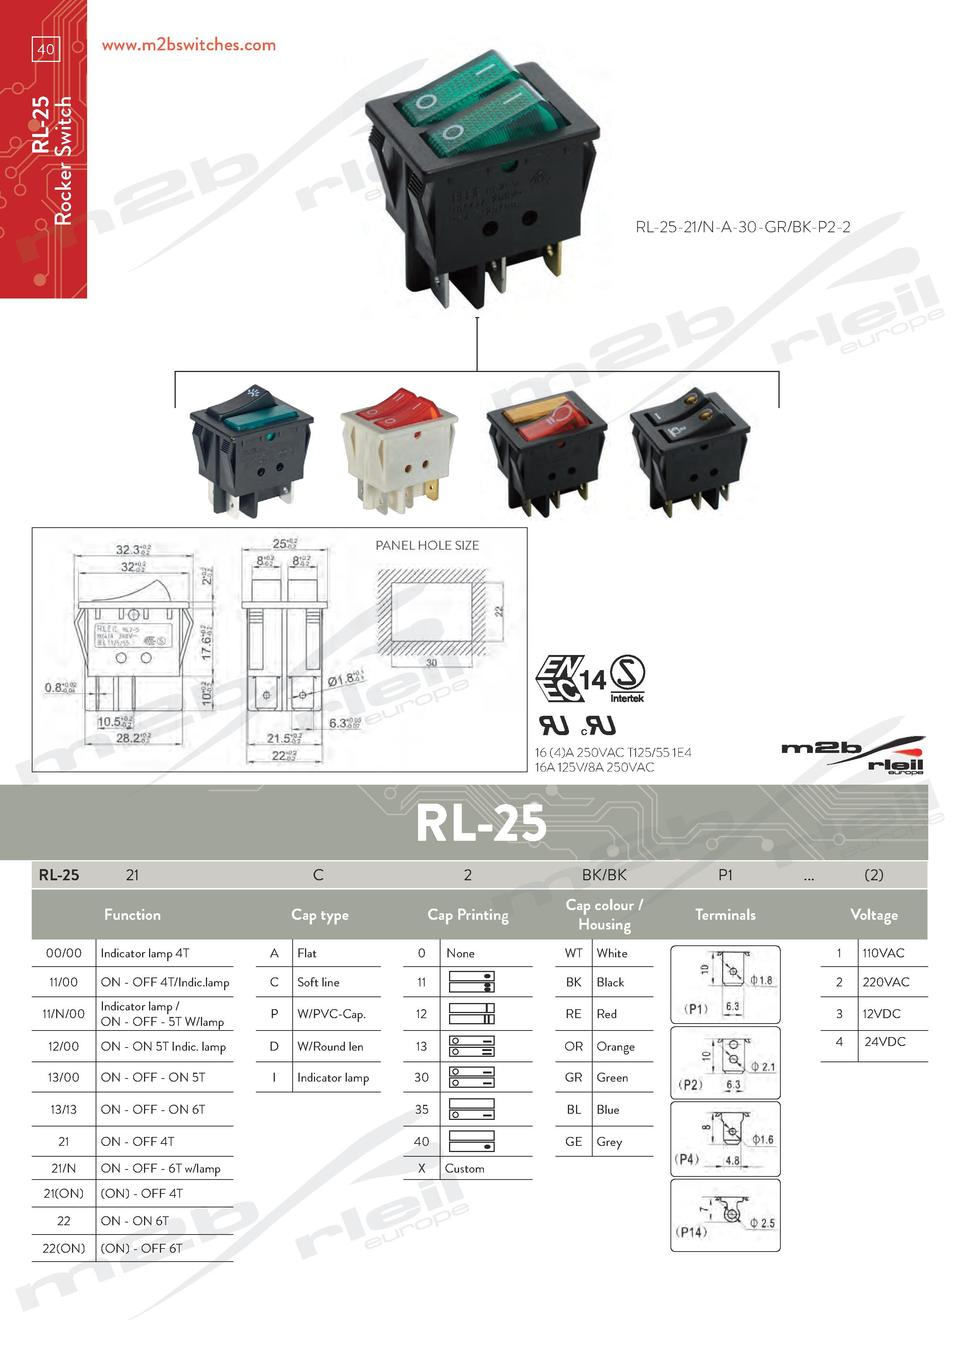 www.m2bswitches.com  RL-25 Rocker Switch  40  RL-25-21 N-A-30-GR BK-P2-2  PANEL HOLE SIZE  16  4 A 250VAC T125 55 1E4 16A ...